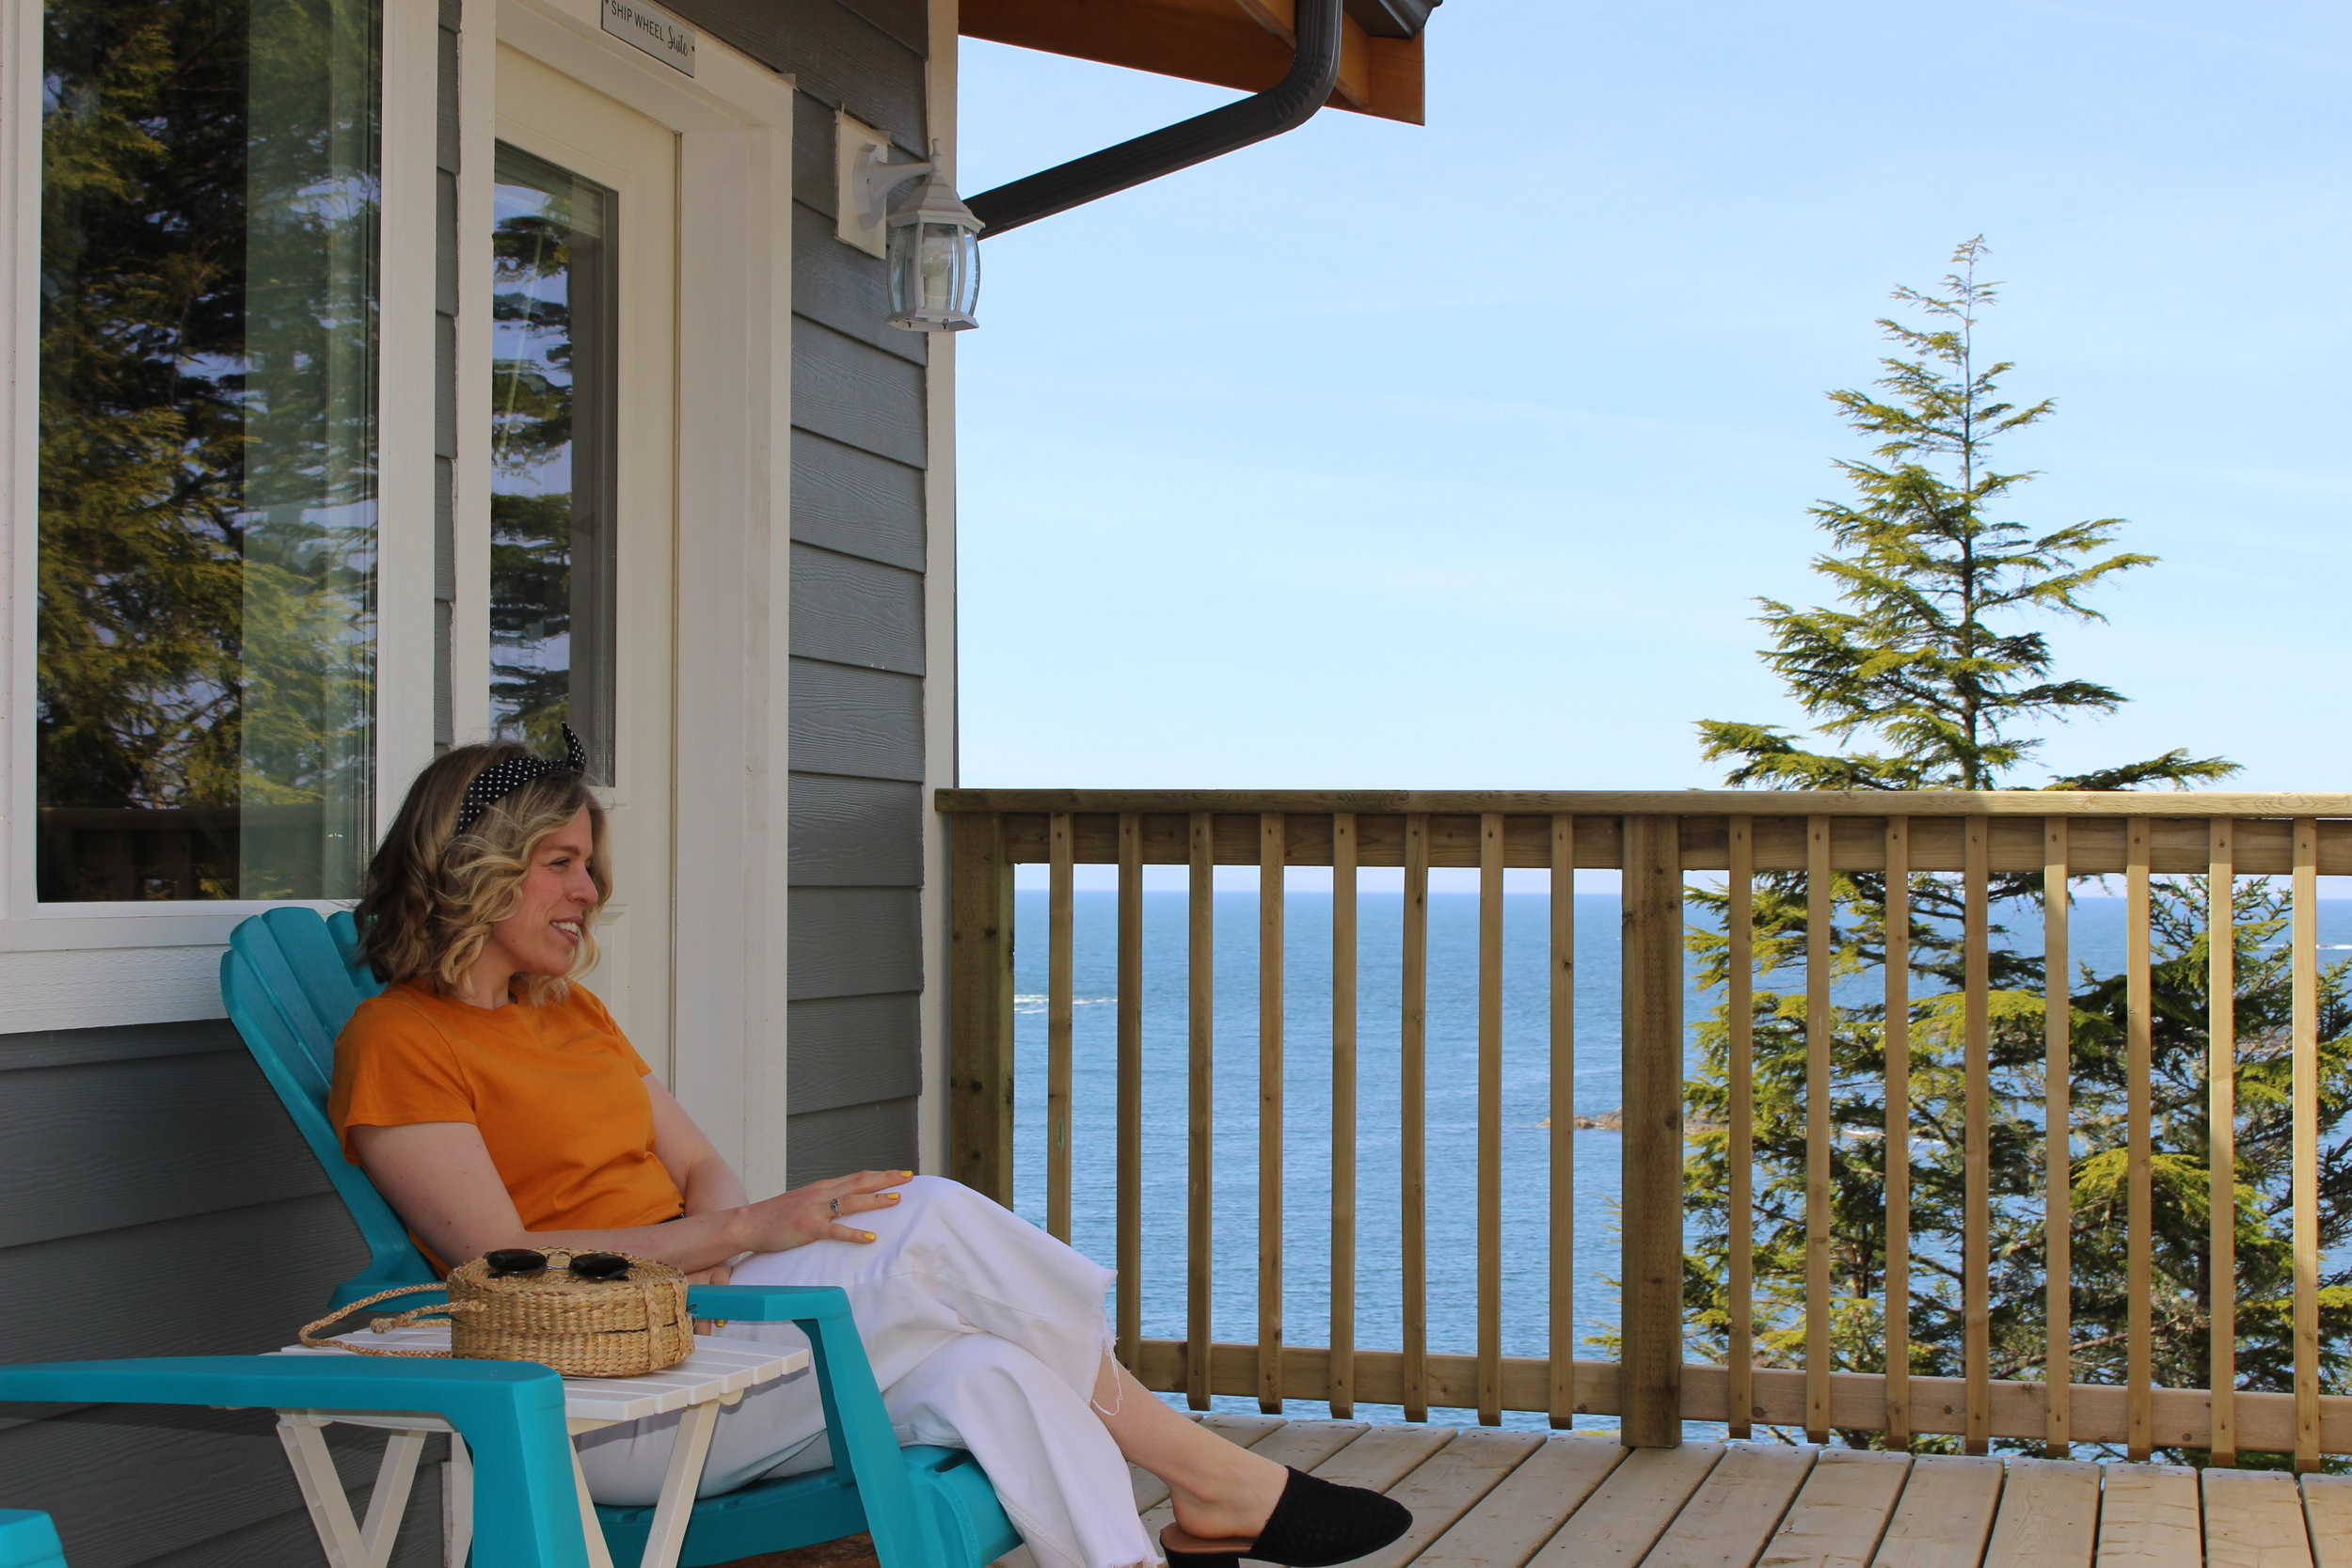 Enjoying the deck outside our suite, the weather could not have been any better!